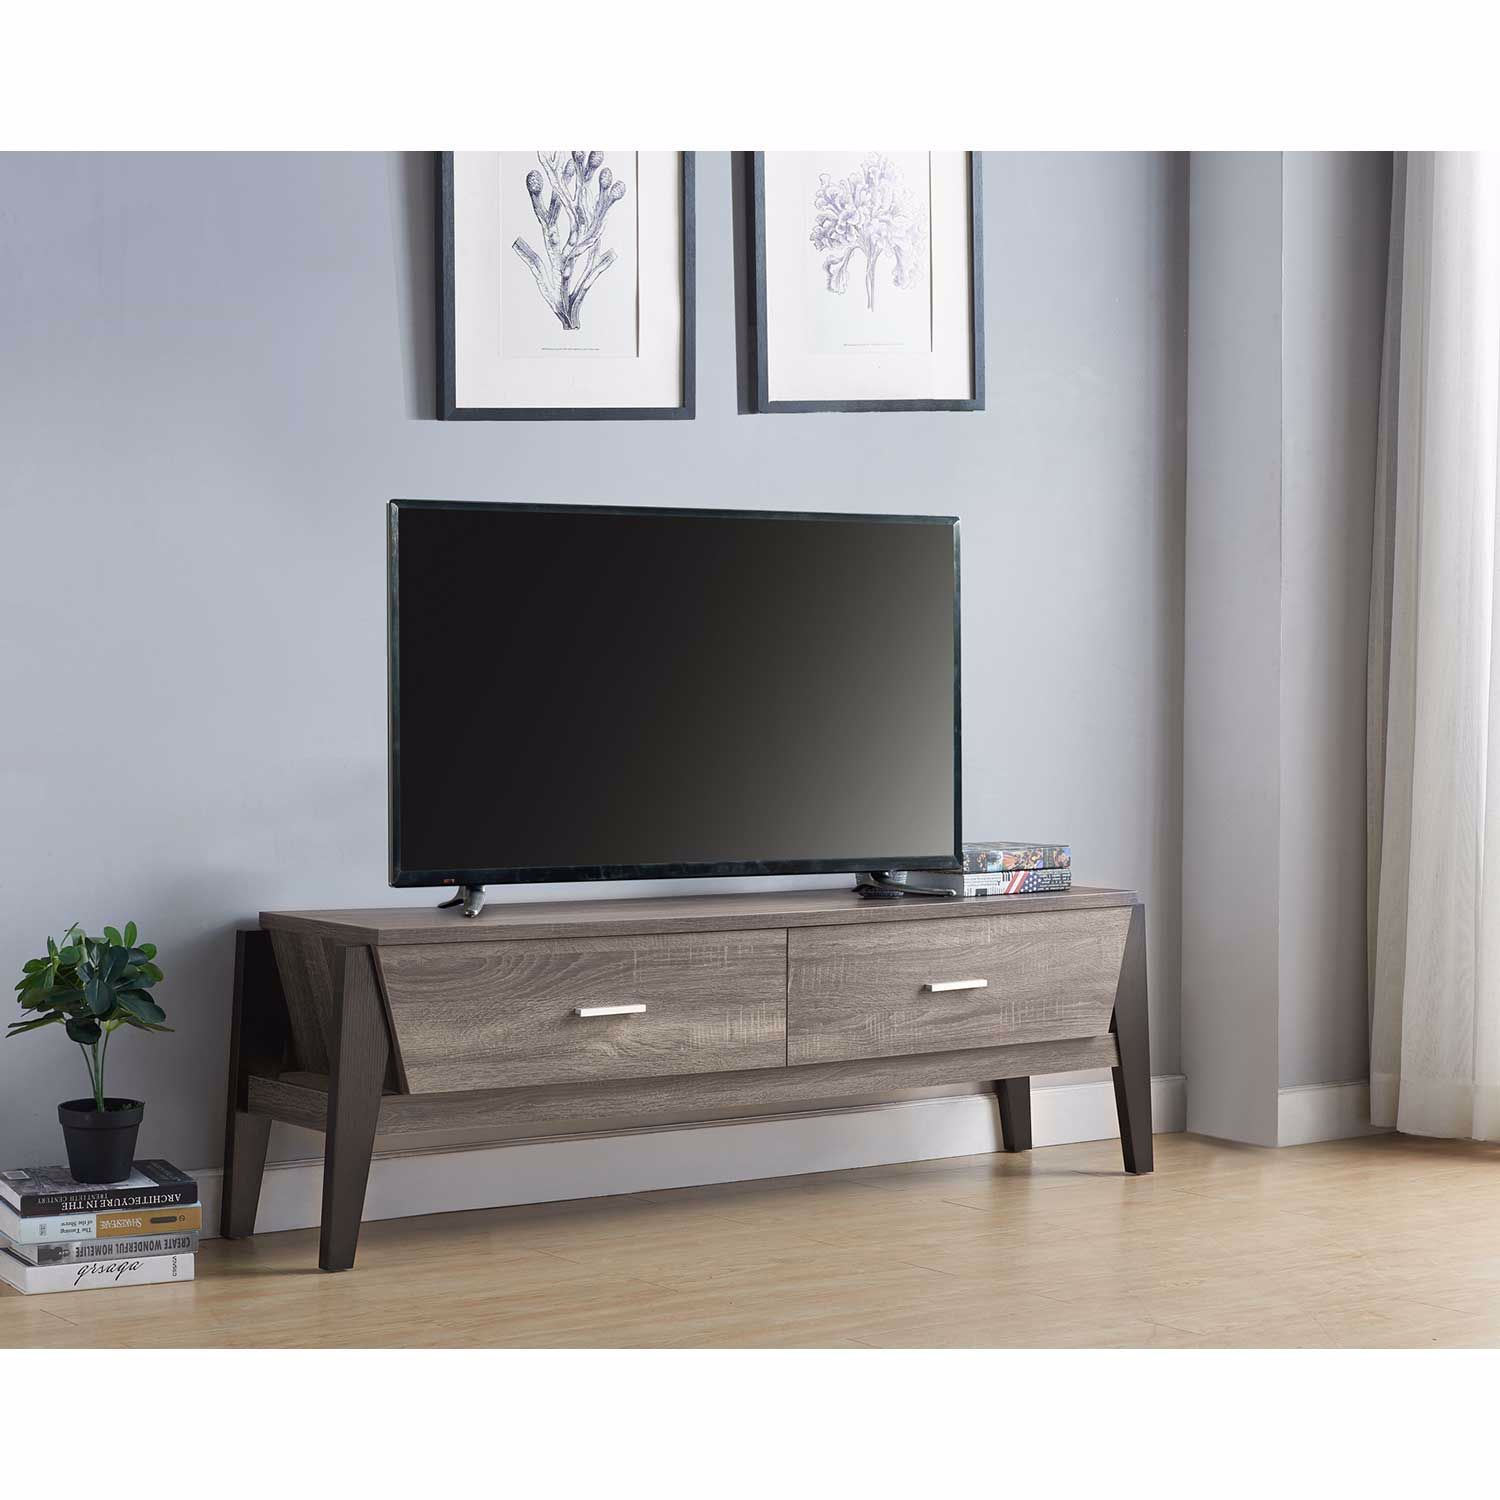 Picture of Gray and Black TV Stand